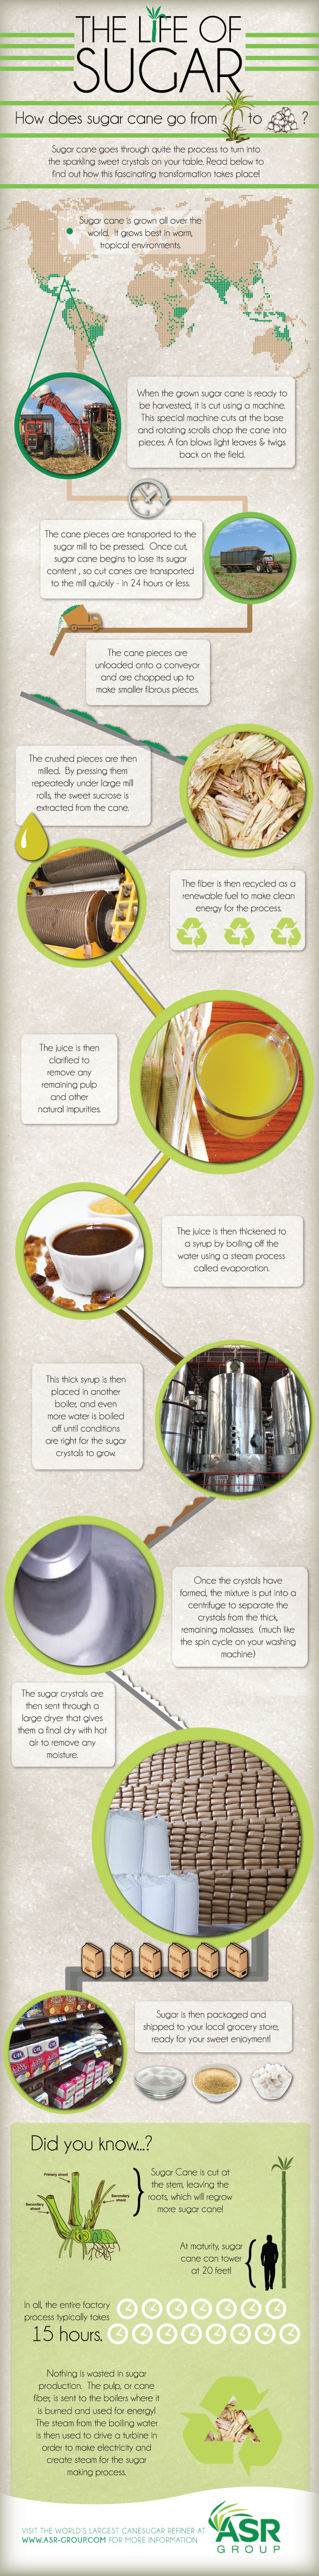 The Life of Sugar Infographic